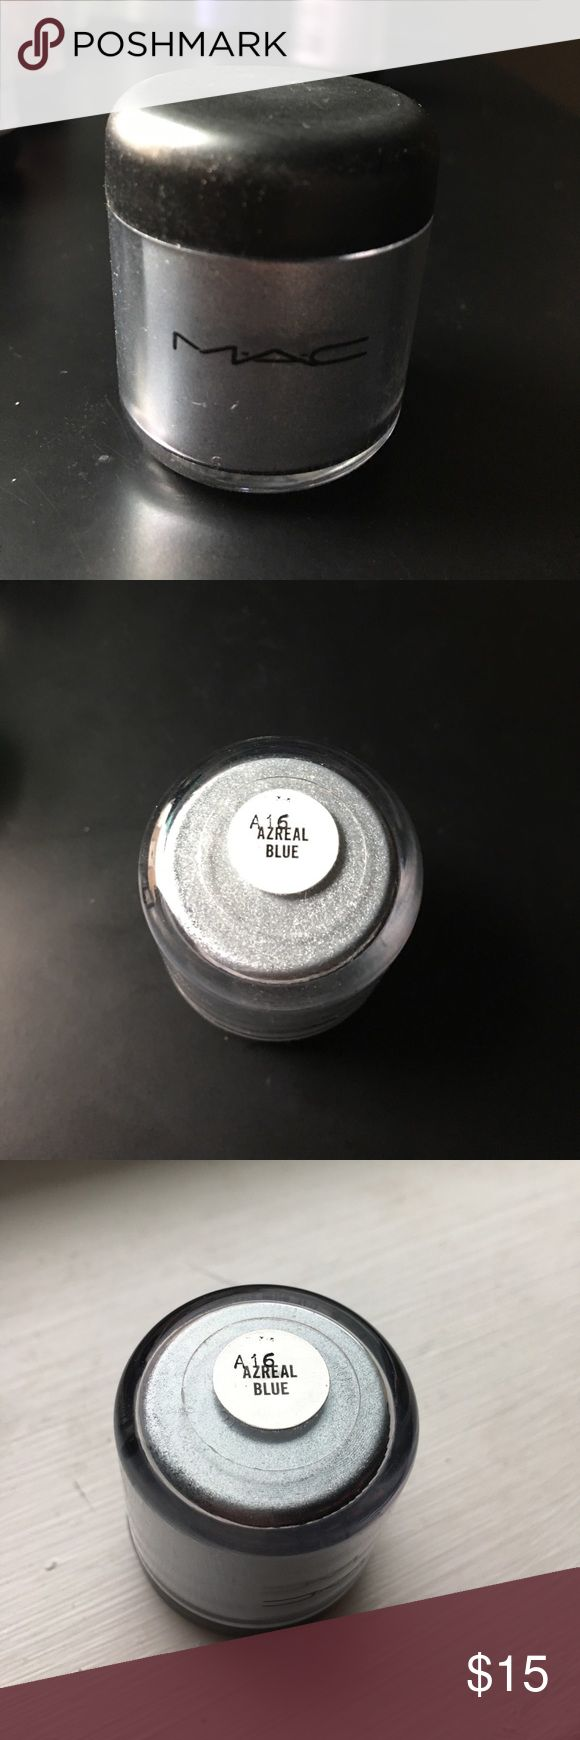 Mac cosmetics Azreal Blue pigment eyeshadow FULL Mac cosmetics Azreal Blue pigment eyeshadow FULL MAC Cosmetics Makeup Eyeshadow